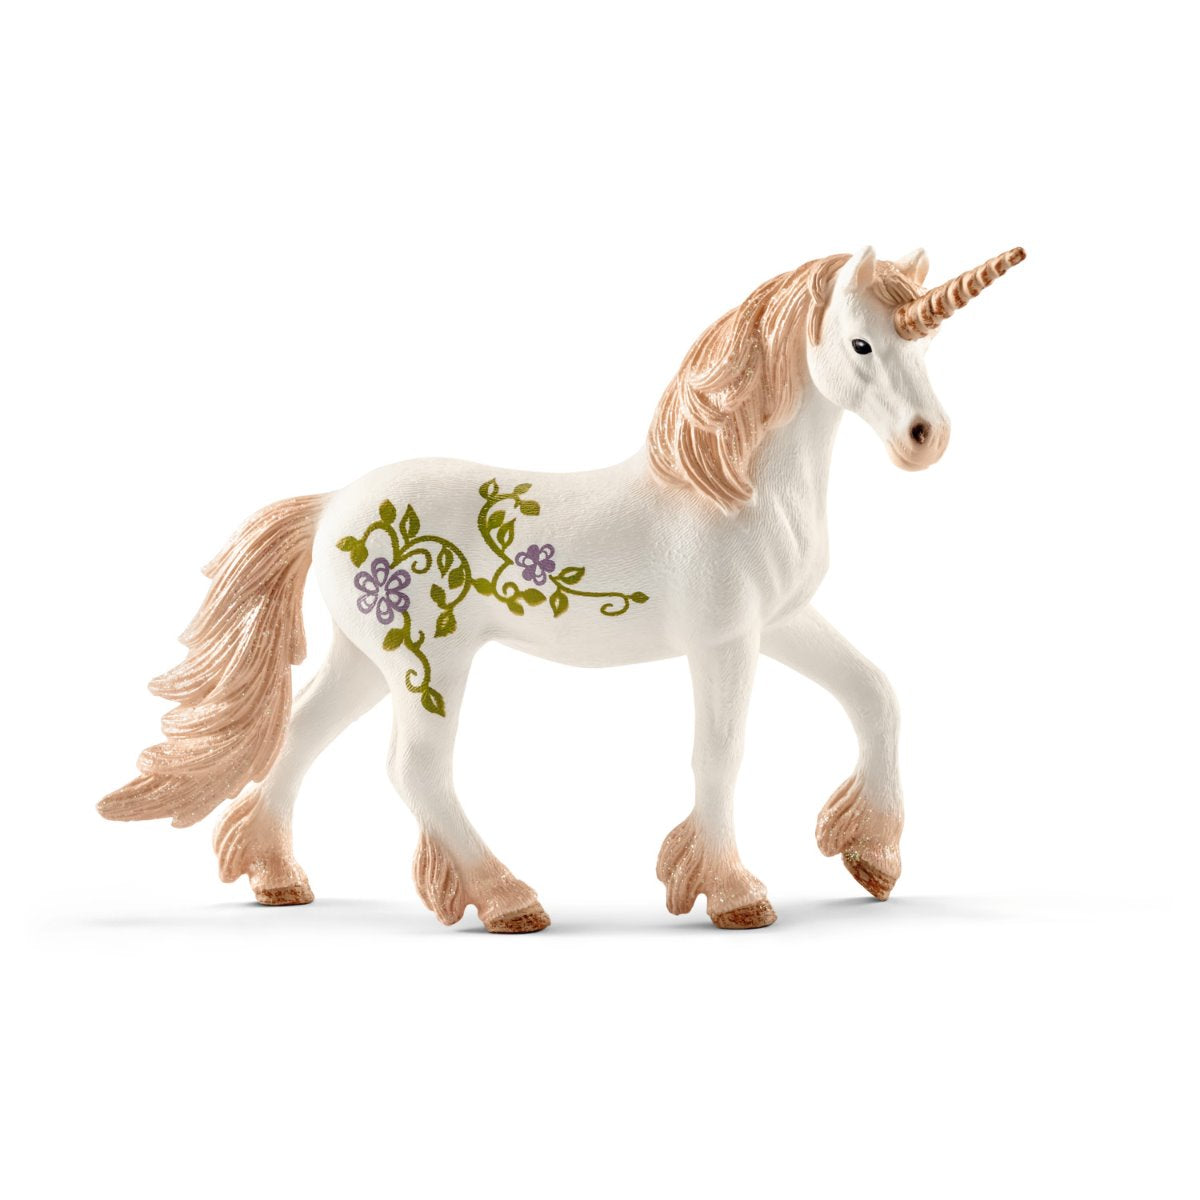 Schleich 70521 Unicorn 2018 at Little Sprout